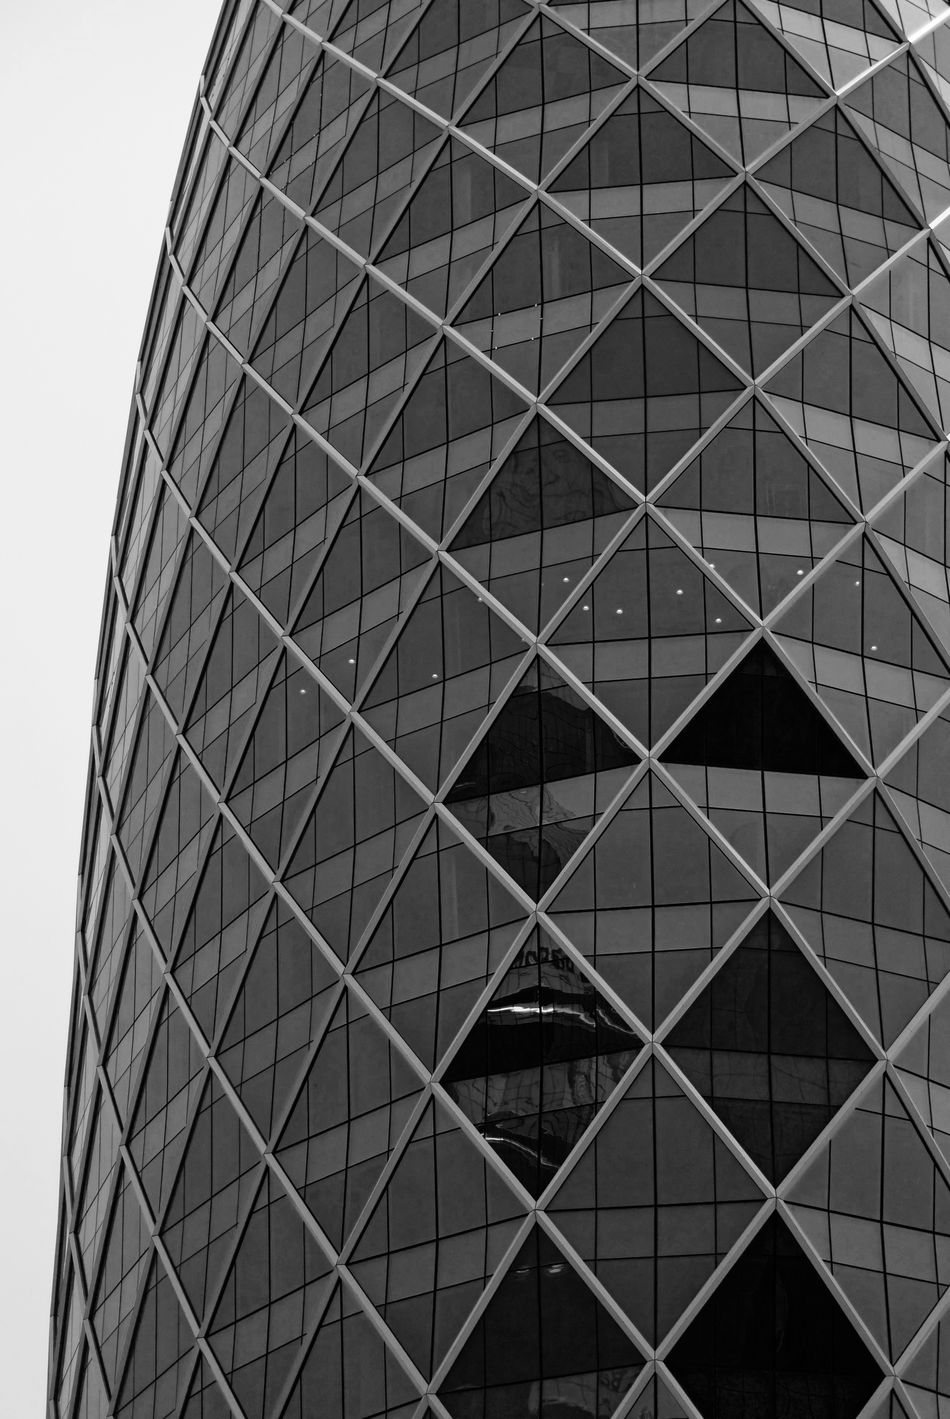 Architecture Building Exterior Built Structure City Close-up Day Low Angle View Modern No People Outdoors Sky Travel Destinations